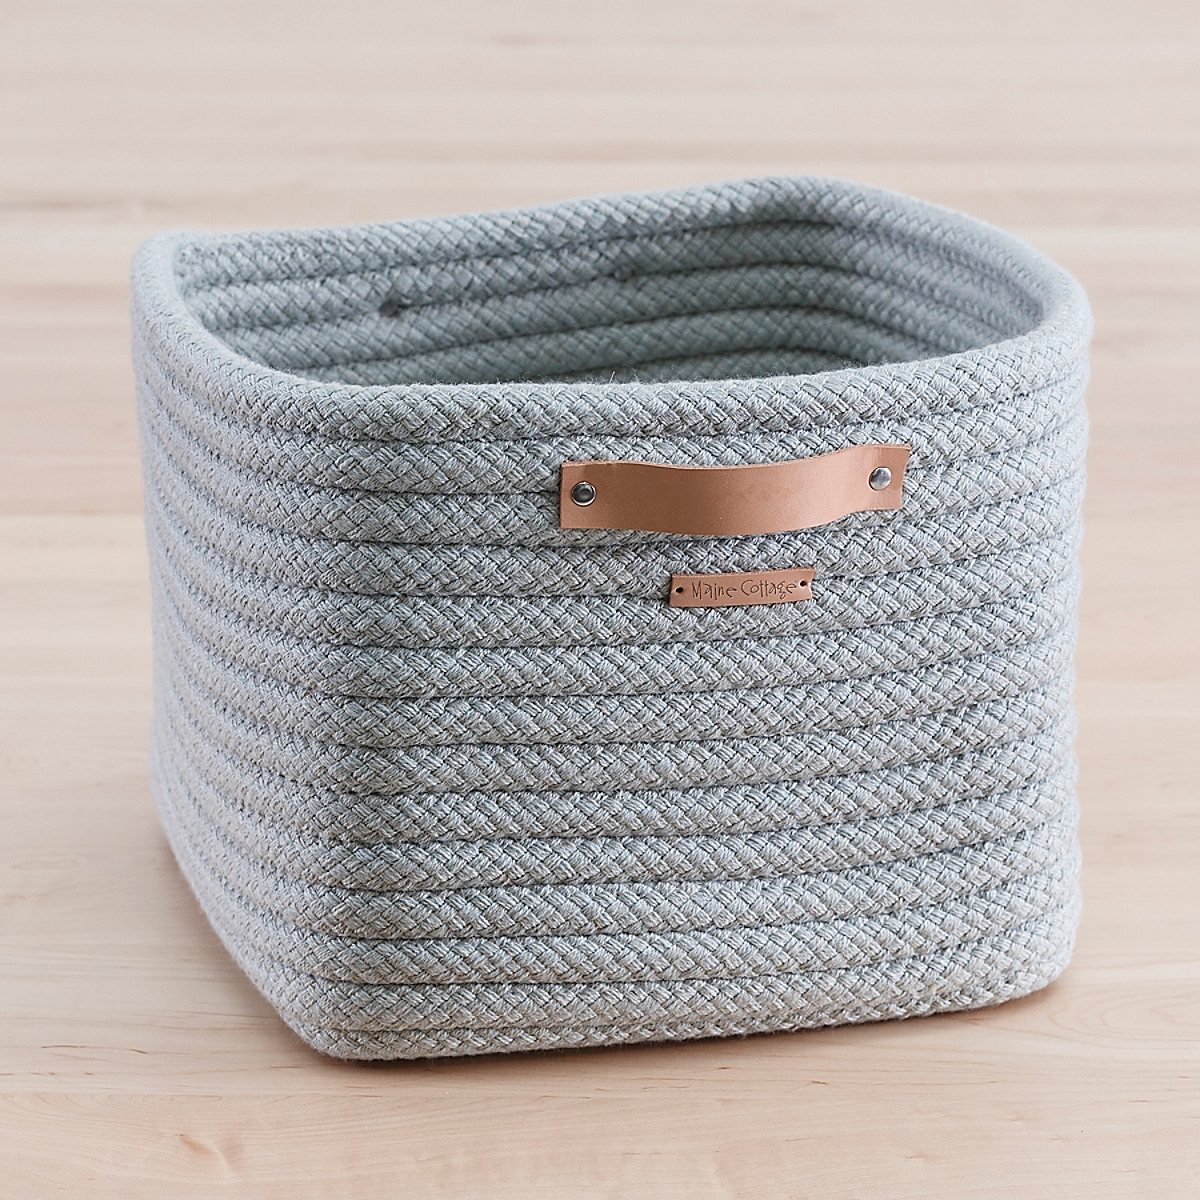 Braided Sunbrella Stow-Away Basket